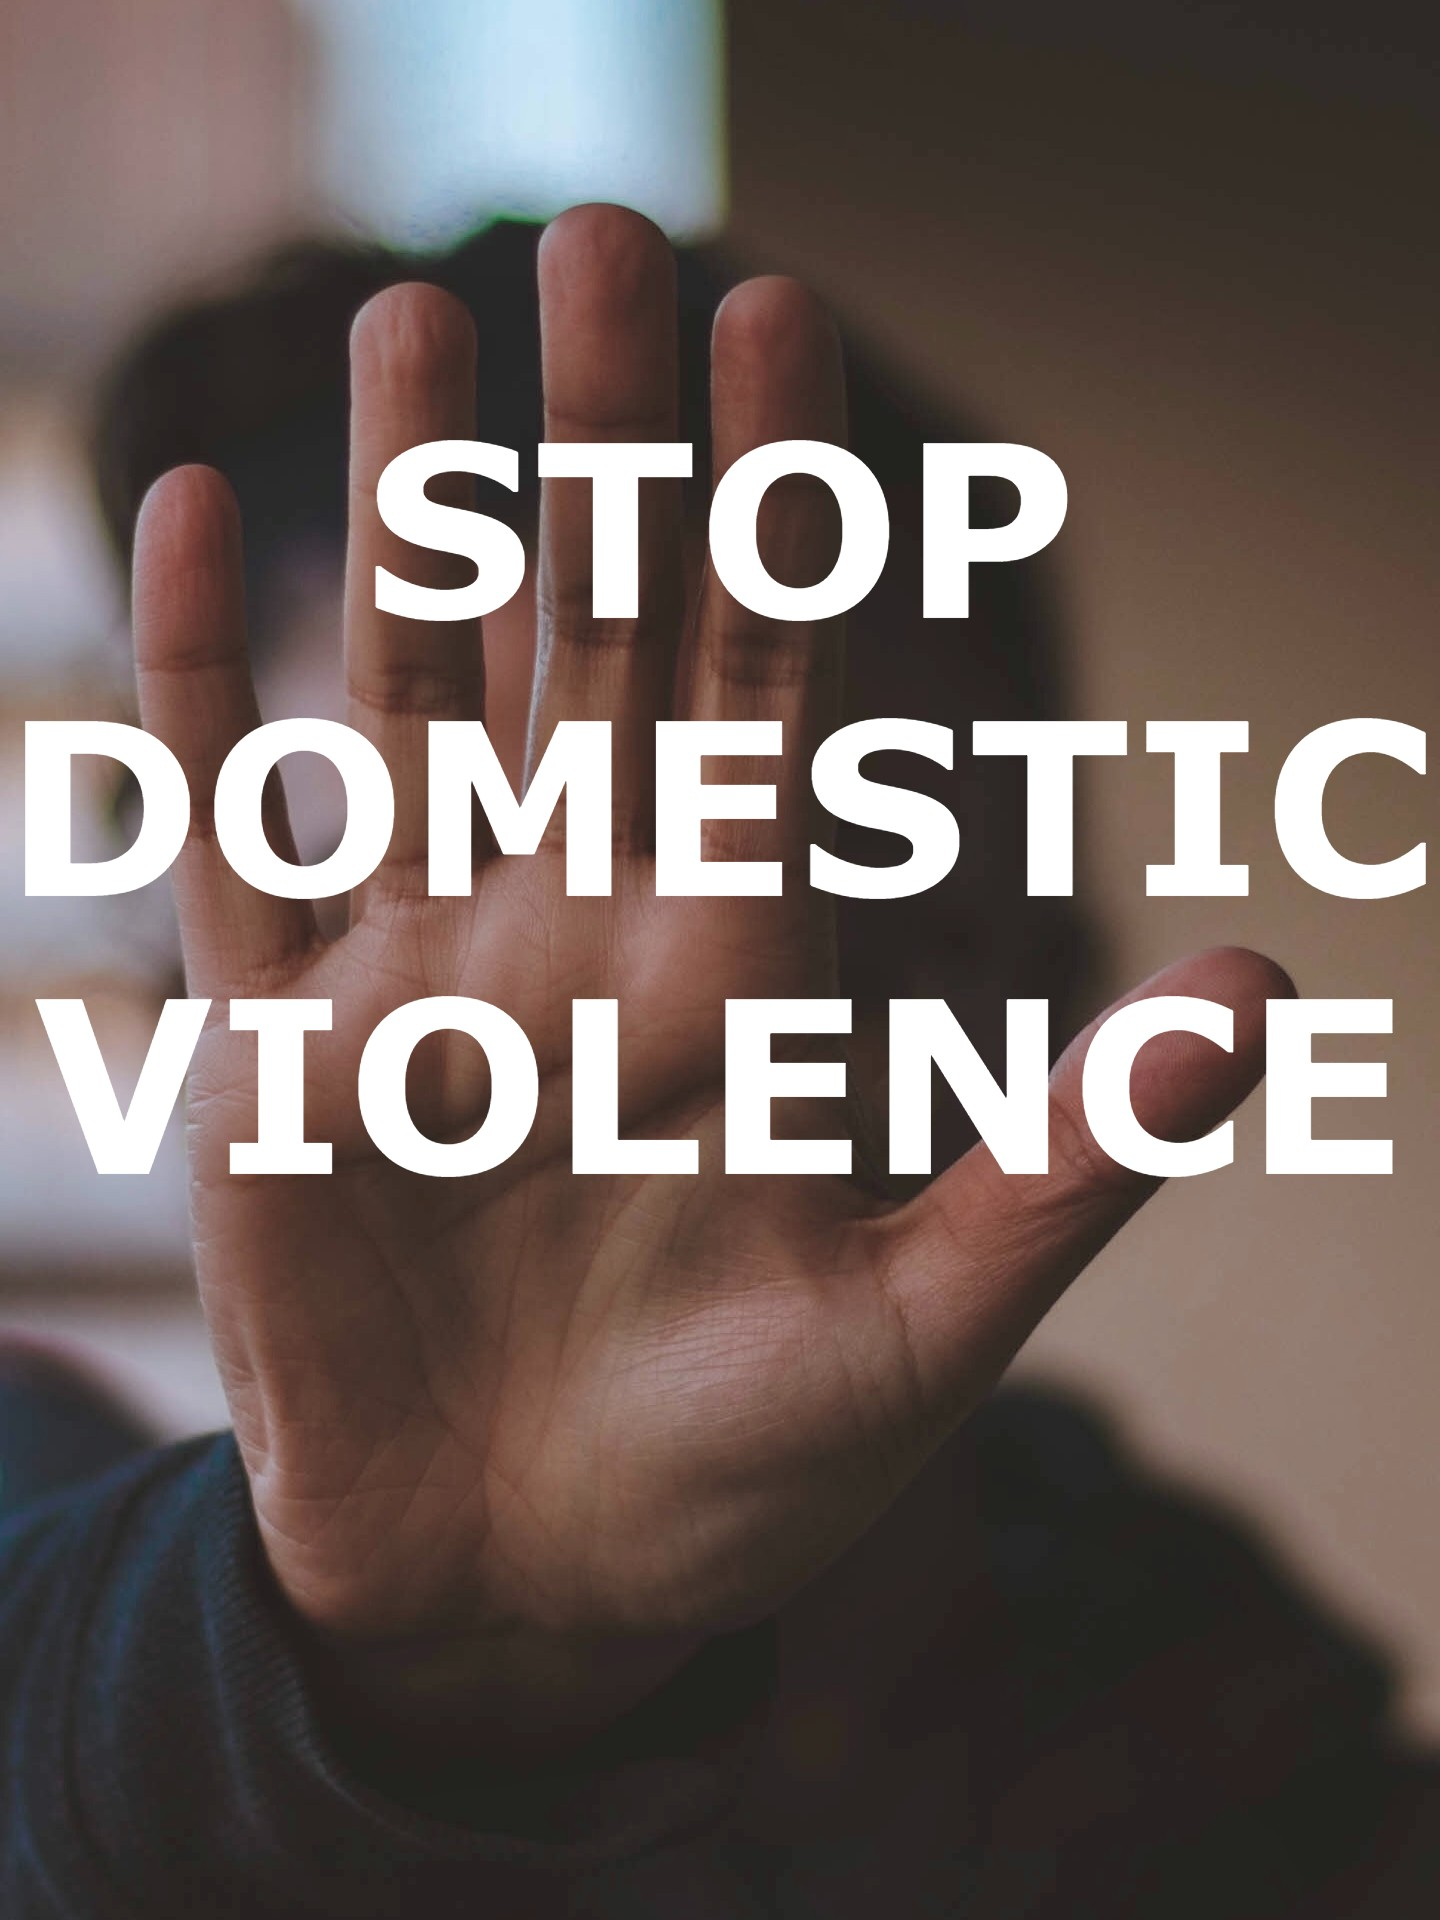 You are currently viewing Challenges in Investigating Domestic Violence Cases, SVU says